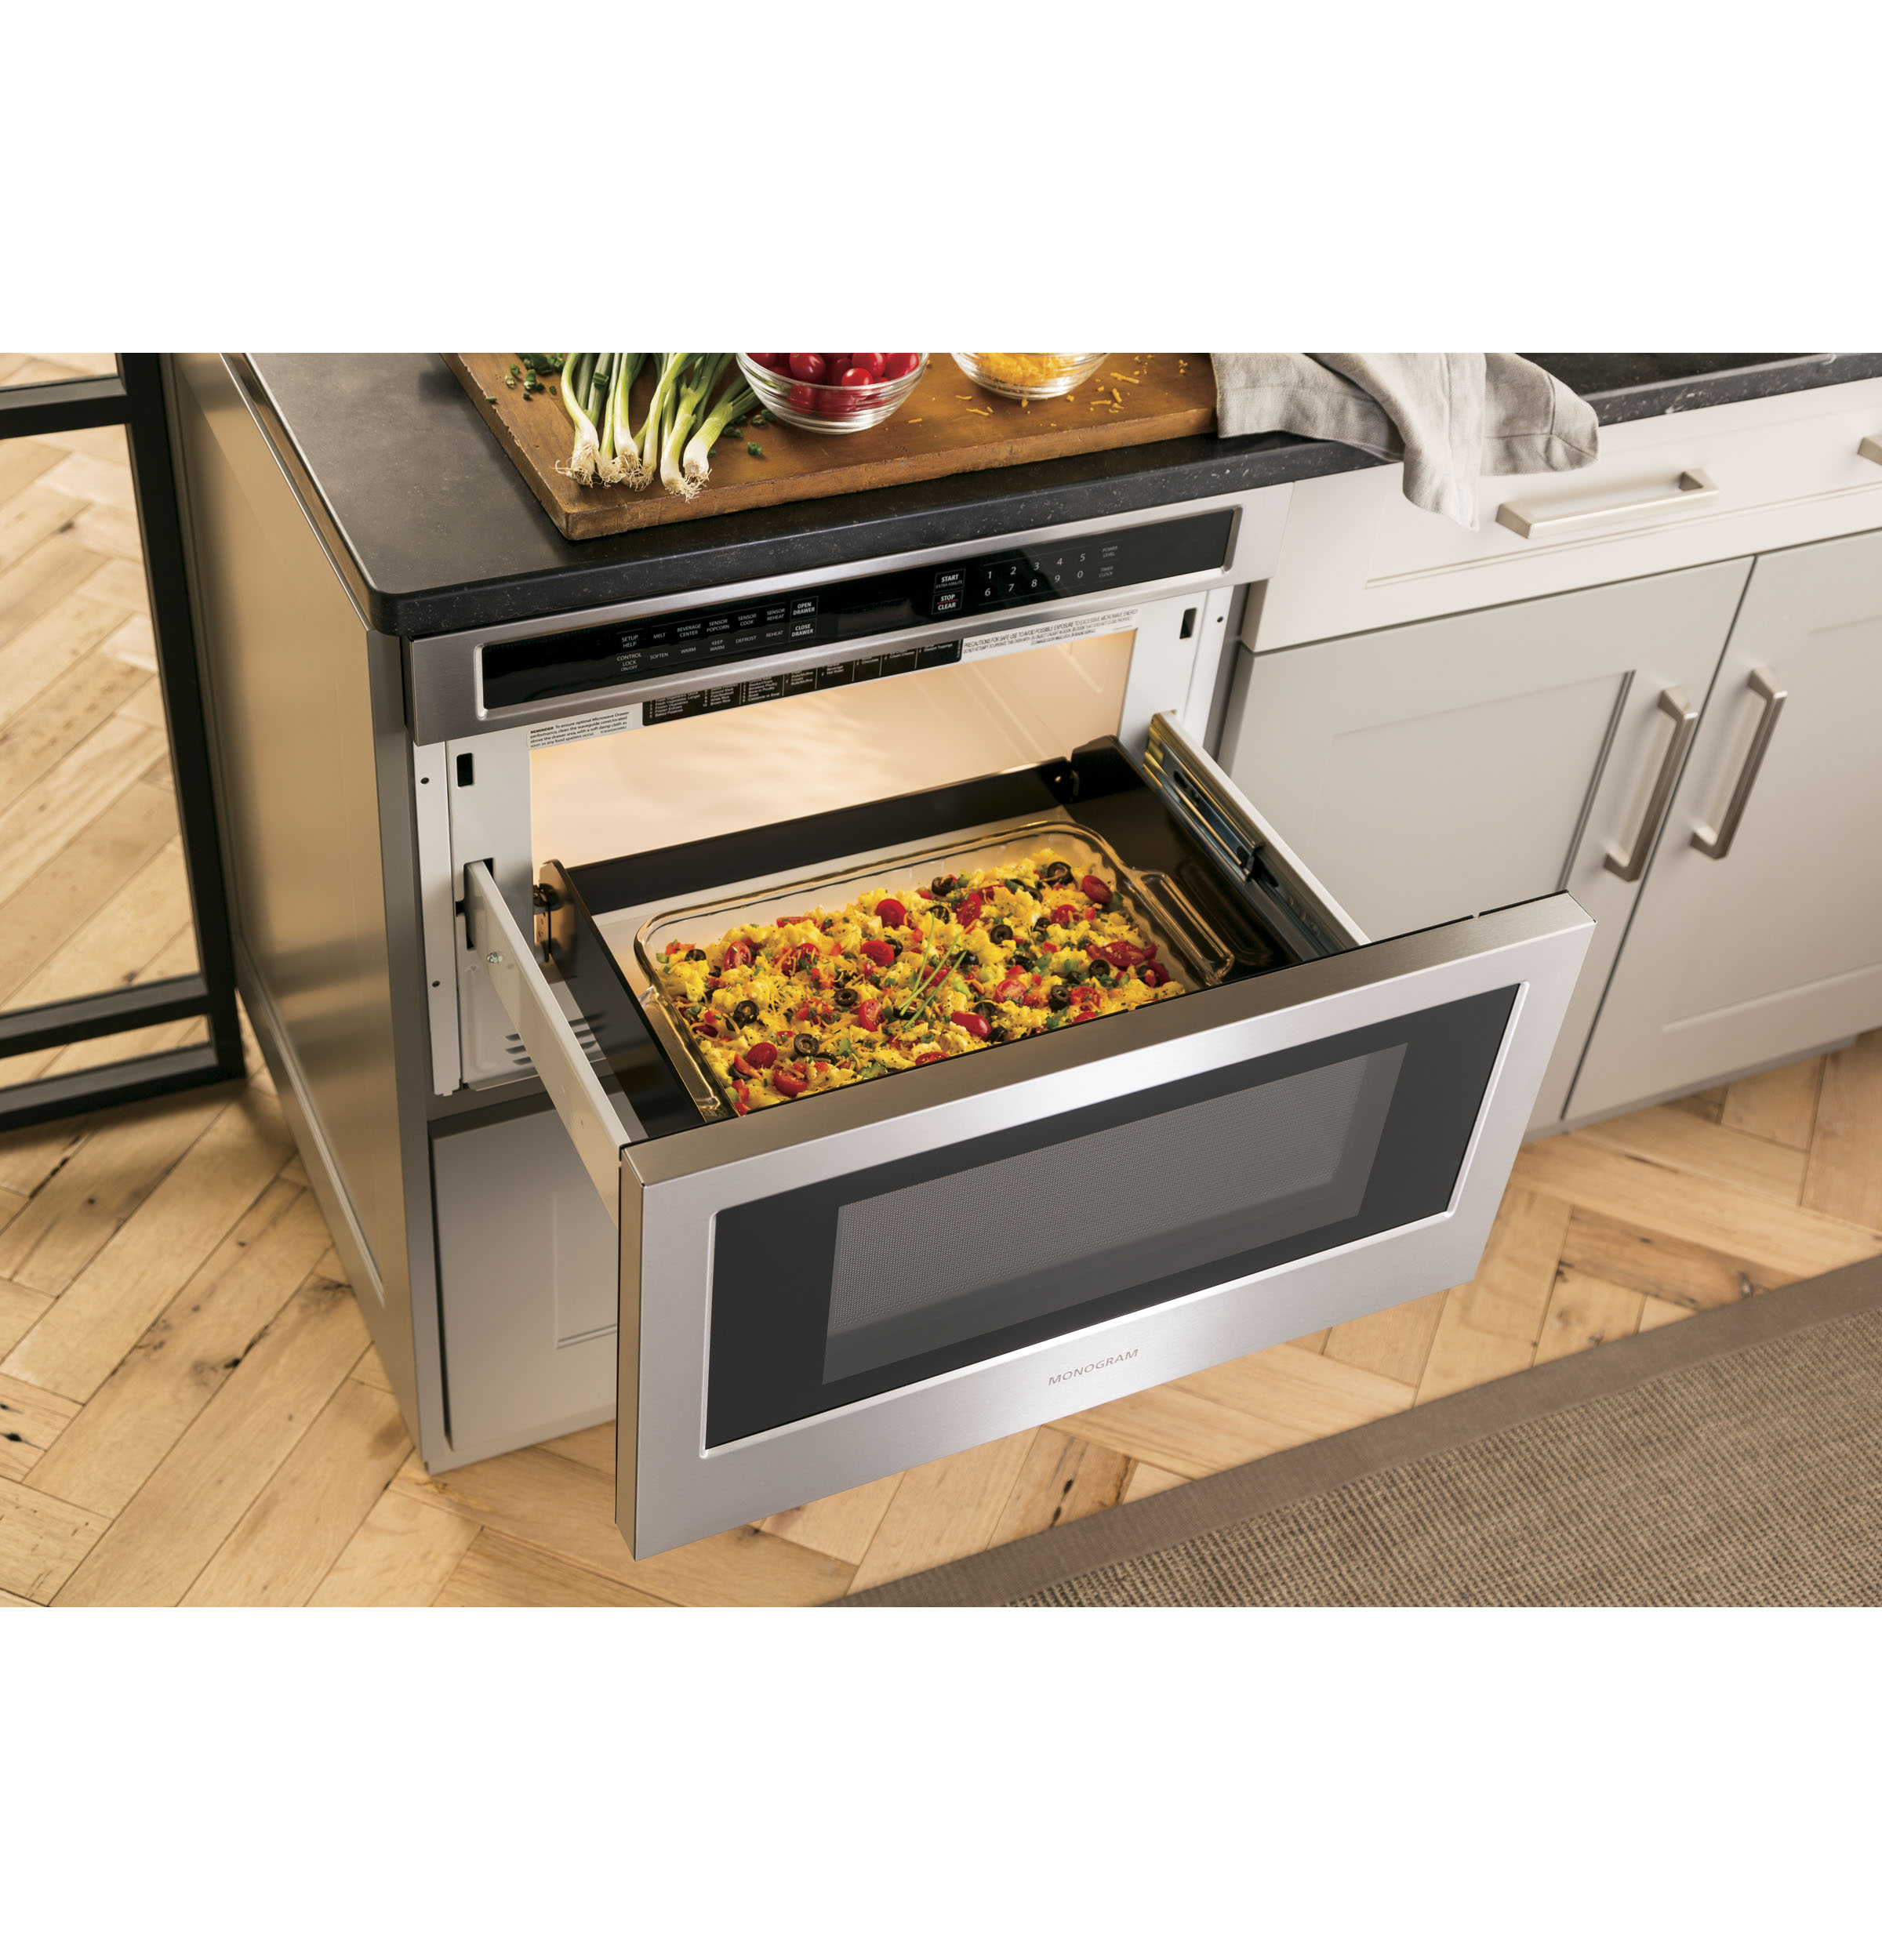 Model: ZWL1126SJSS | Monogram Monogram 1.2 Cu. Ft. Drawer Microwave